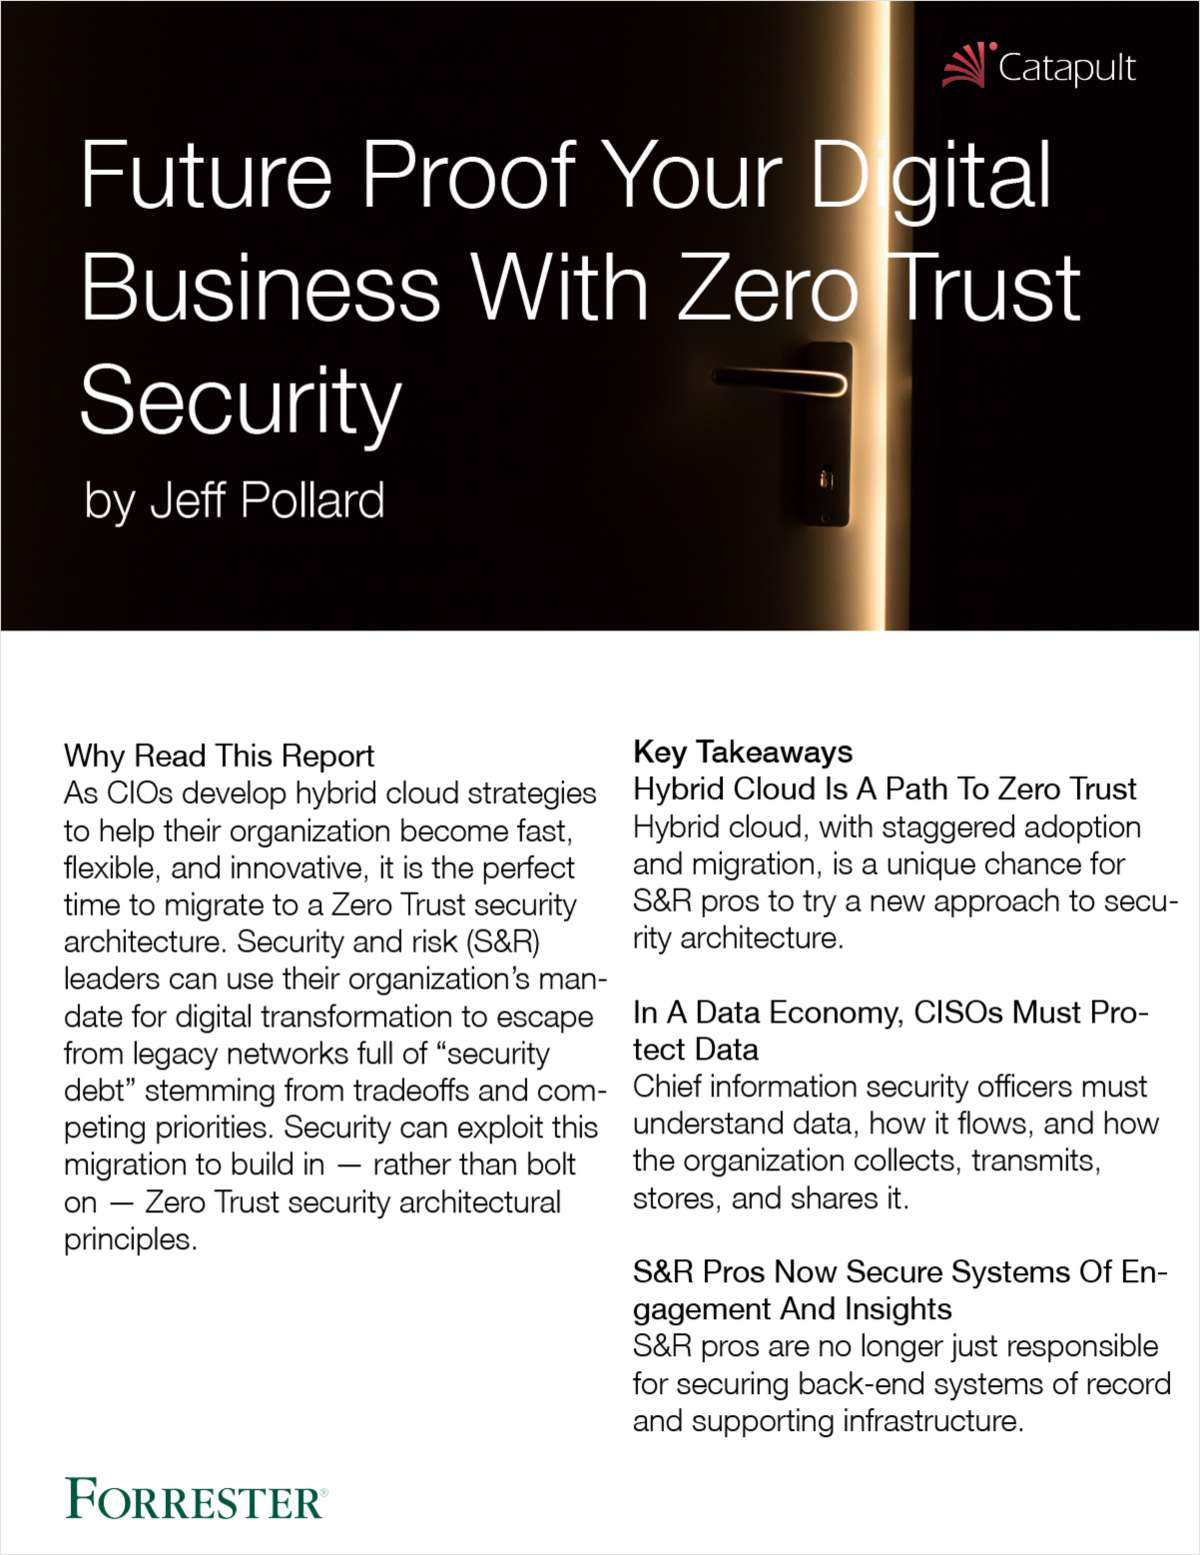 Future Proof Your Digital Business with Zero Trust Security